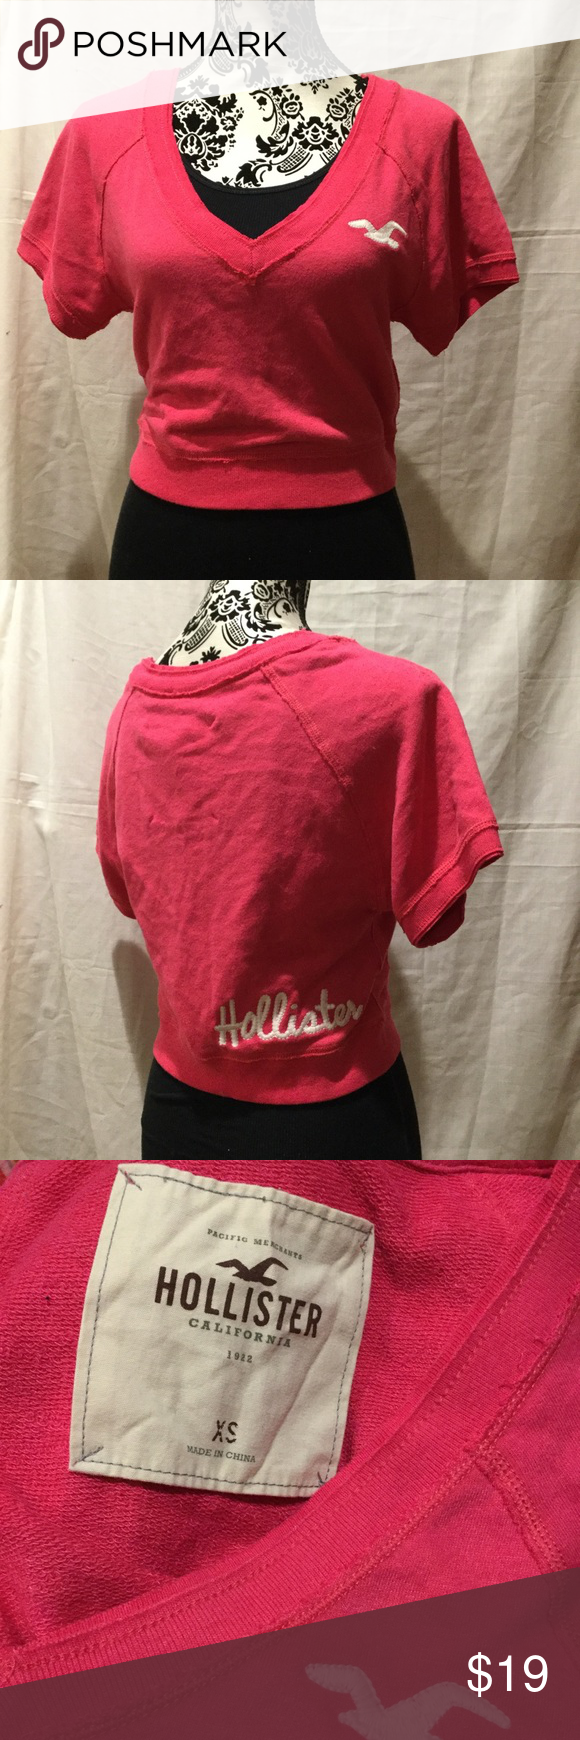 Hollister Shirt Hollister Shirt Size XS Color Pink.This item have been worn but has no visible signs of wear in Excellent Condition. Hollister Tops Tees - Short Sleeve